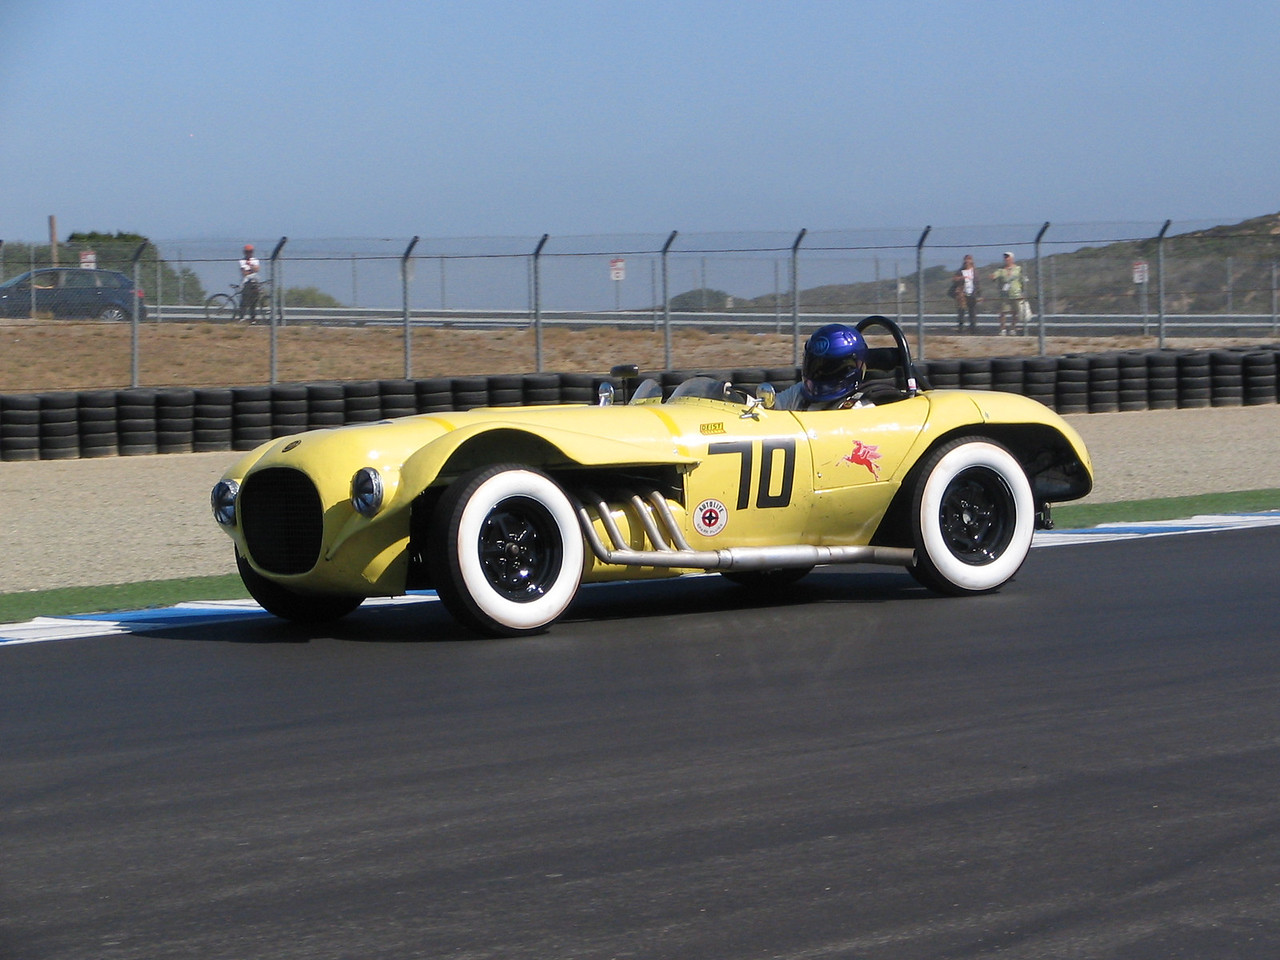 """Balchowsky Buick Special (Old Yeller II). This has been a crowd favorite for the last several years. It was built using a 'homemade' chassis and a Buick V8. The car was built by the Hollywood Motors shop in 1959 using many off-the-shelf aircraft parts. It regularly competed in southern California road racing events, giving the more-developed factory Jaguars and Ferraris a challenge. For more information on this interesting car, go to  <a href=""""http://oldyeller2.com/index.html"""">http://oldyeller2.com/index.html</a>"""